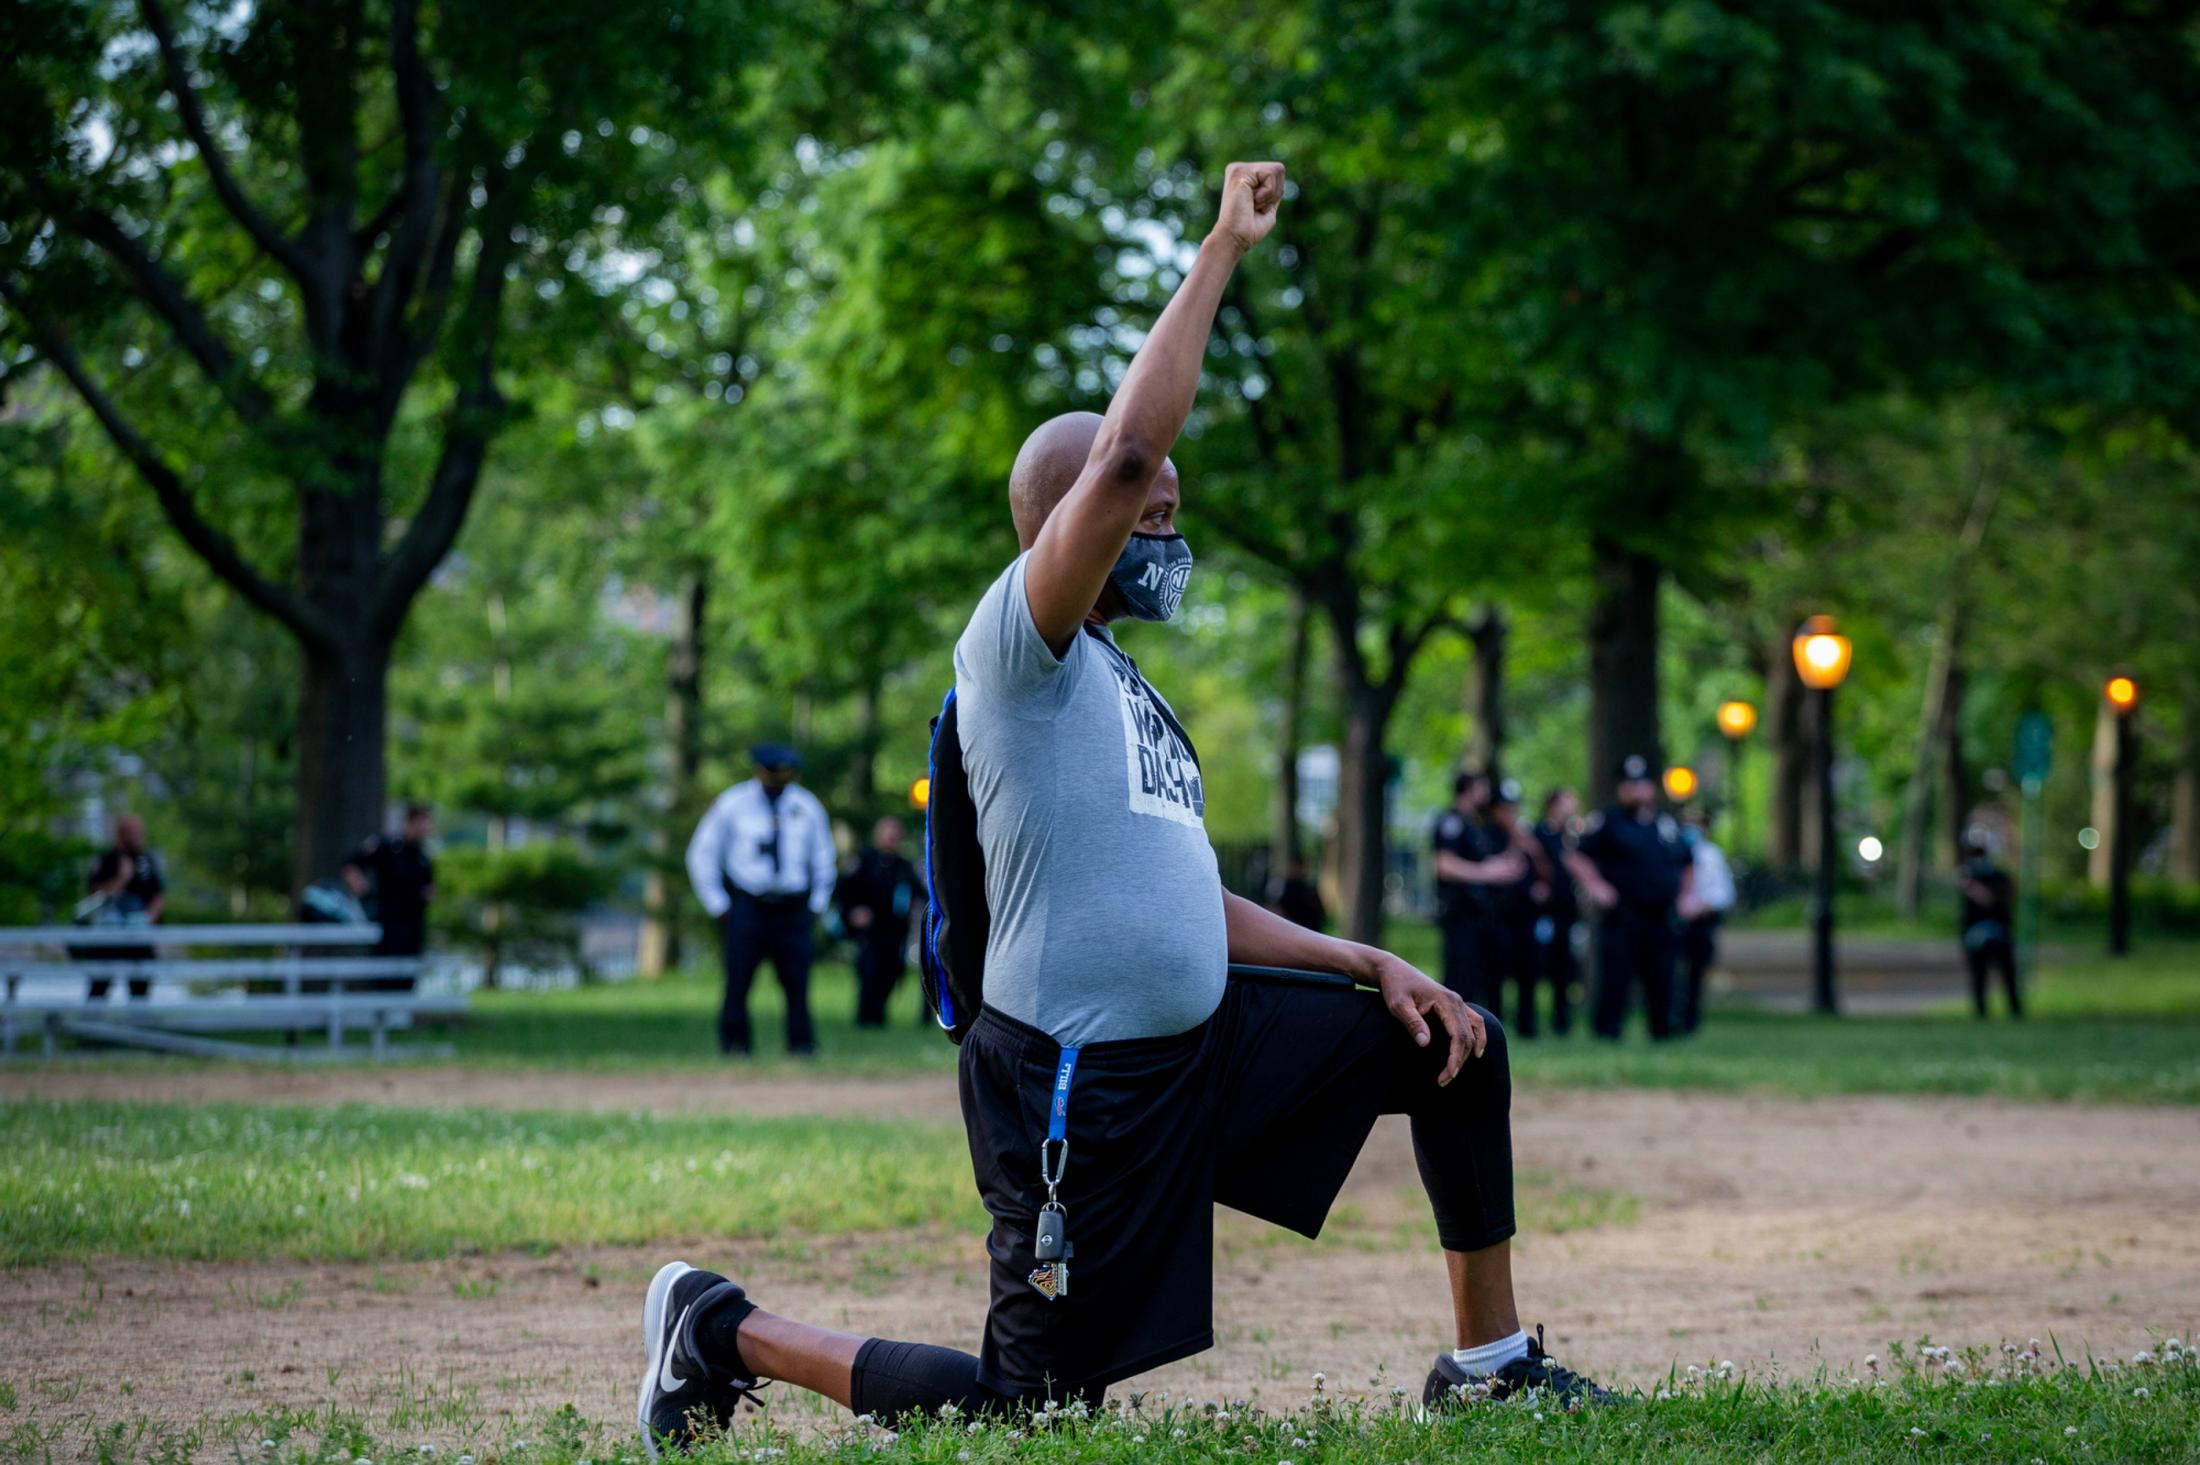 Hundreds took a knee during a moment of silence for George Floyd at Queensbridge Park on Tuesday, June 2020 in Long Island City, New York.